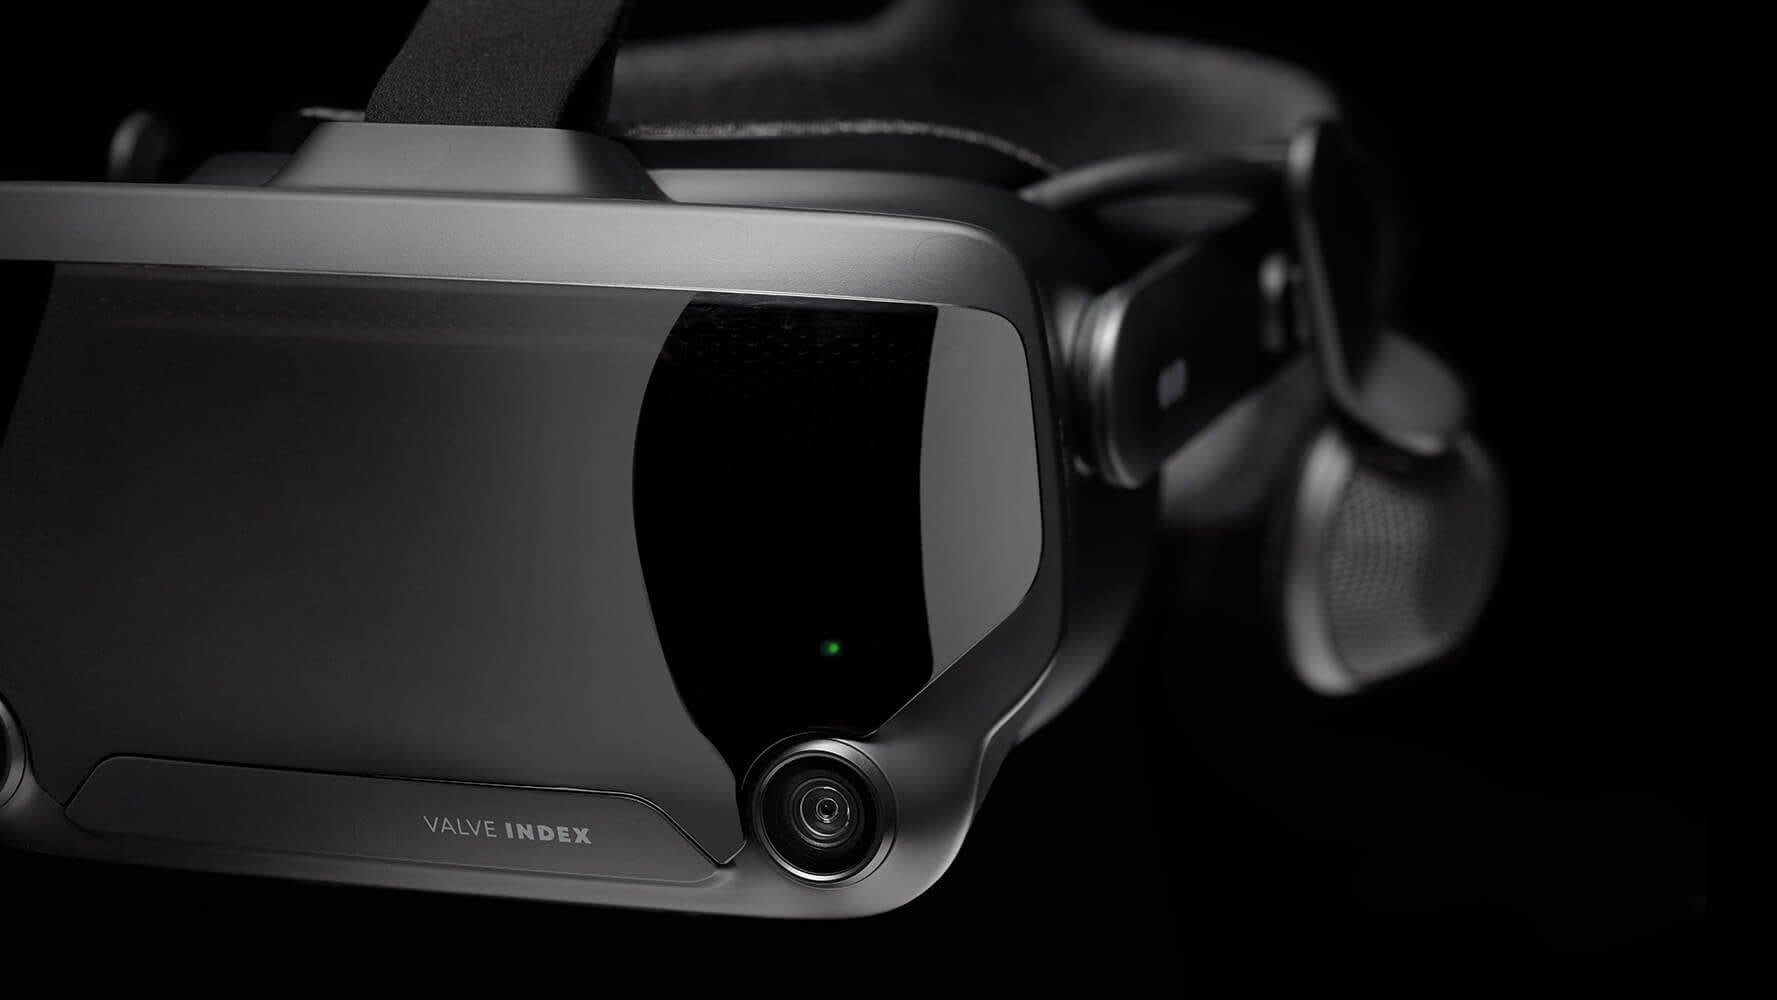 The Most Interesting Thing About Valve's Fancy New VR Headset Might Be Its Controllers